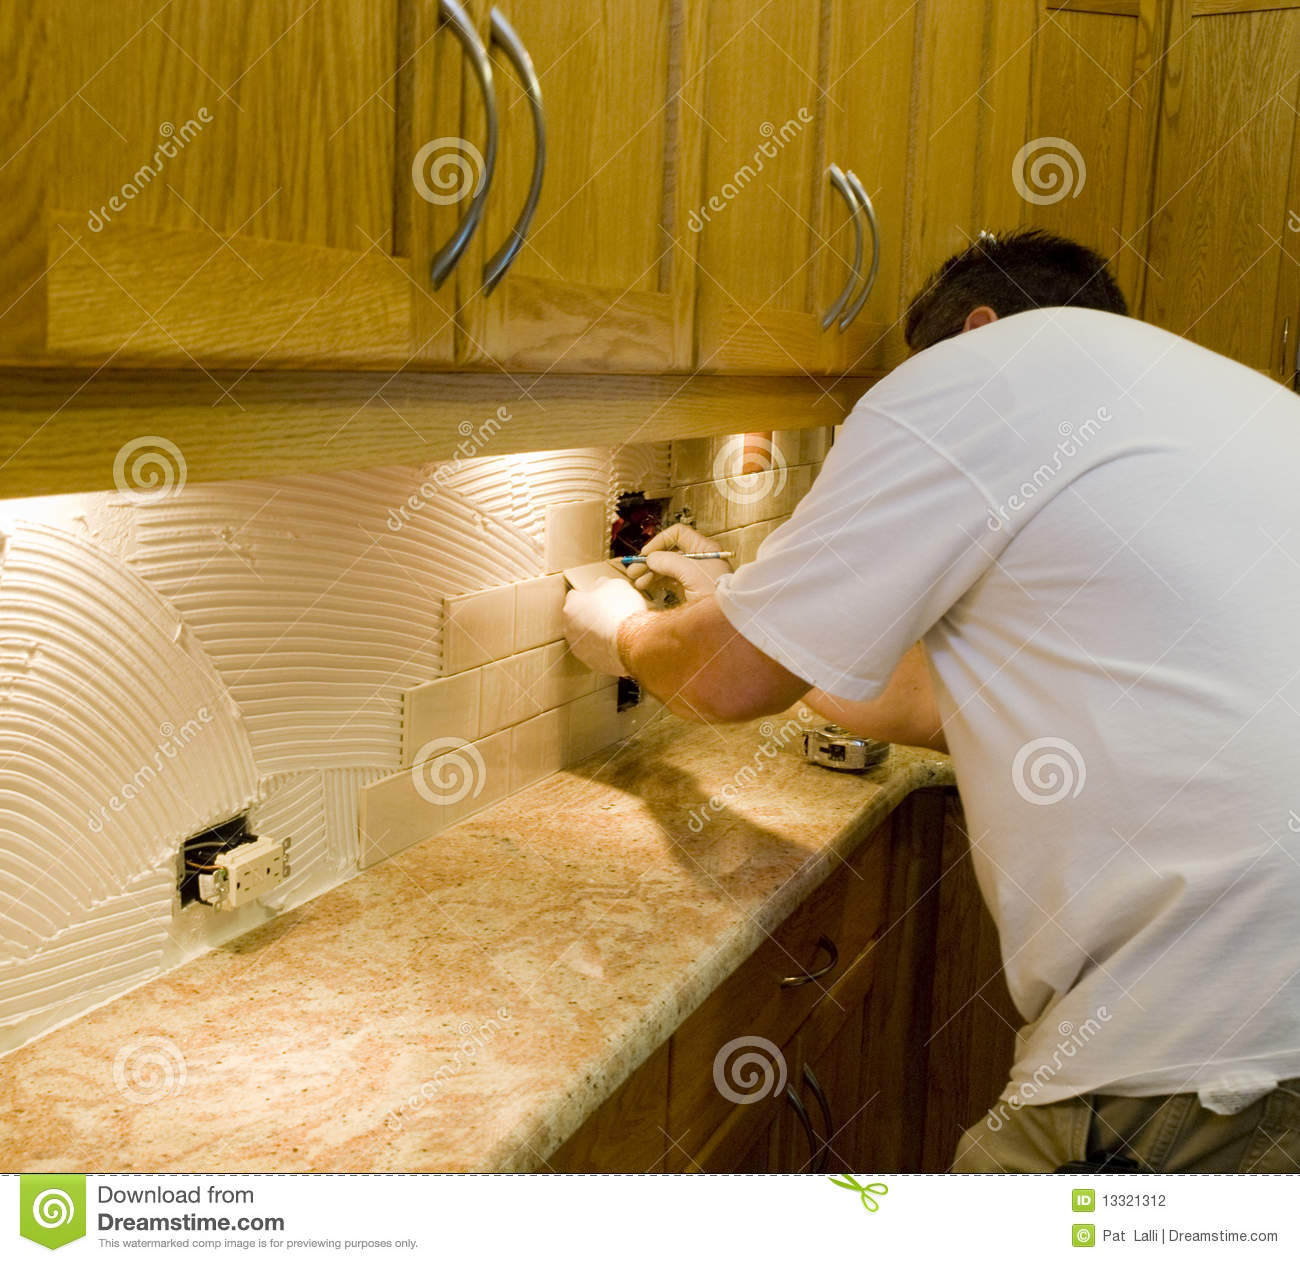 ceramic tile installing kitchen backsplash Ceramic tile installation on kitchen backsplash 12 Stock Photography